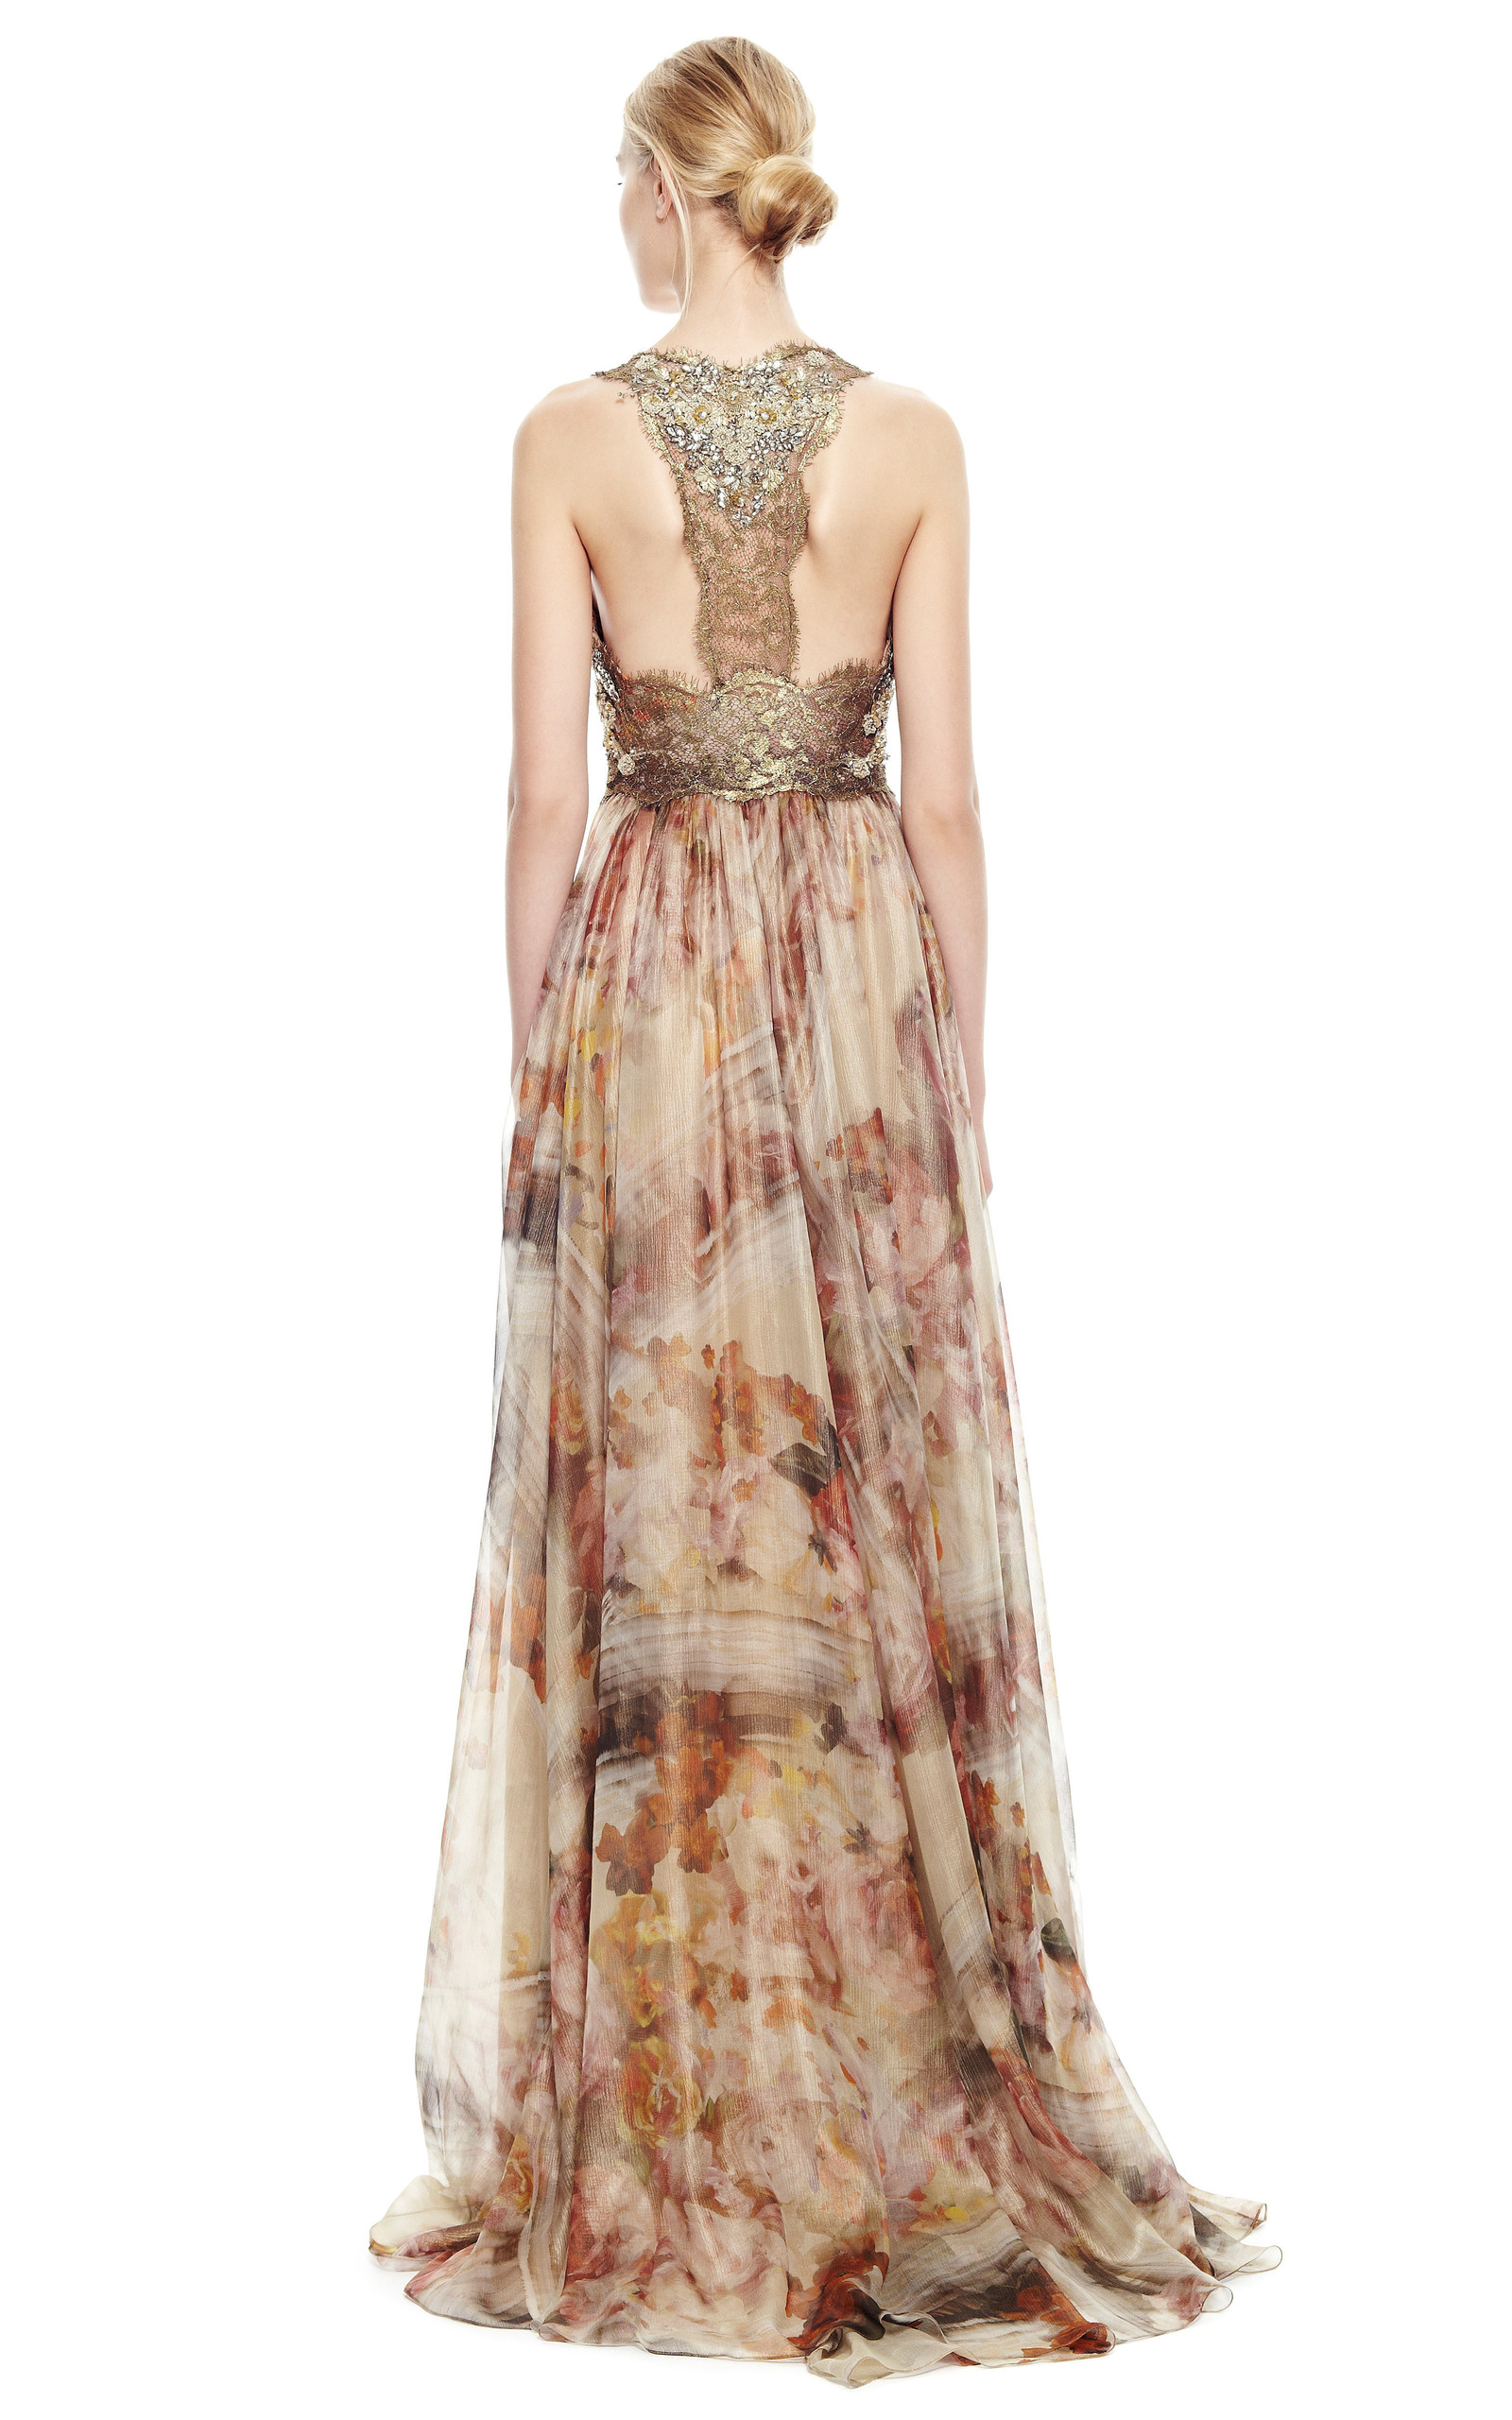 Gold Foil Printed Floral Chiffon Gown By Marchesa Moda